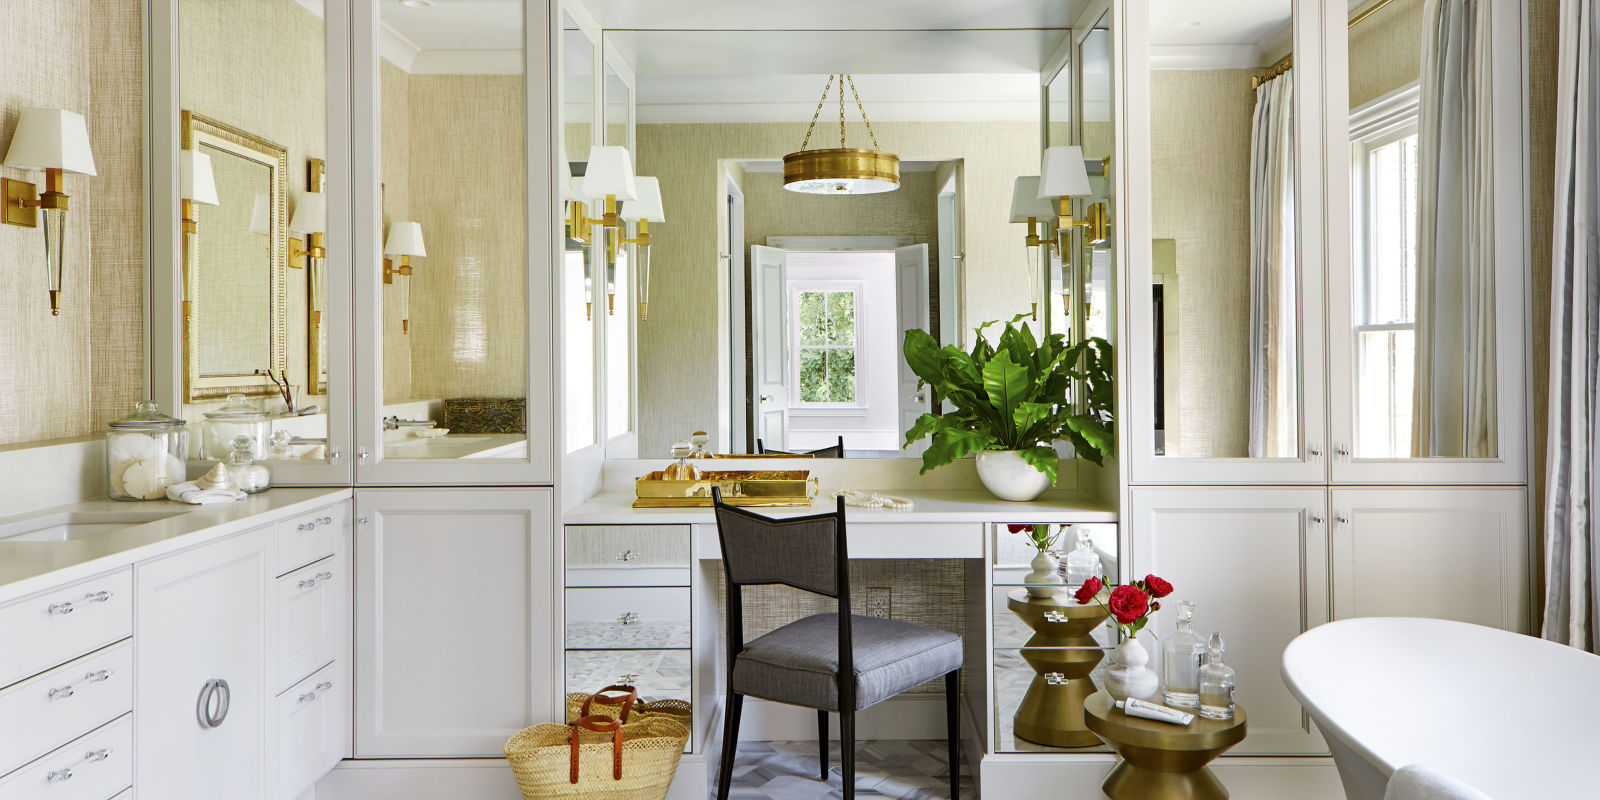 Master Bathroom Decorating Ideas: Glam Bathroom By Matthew Quinn